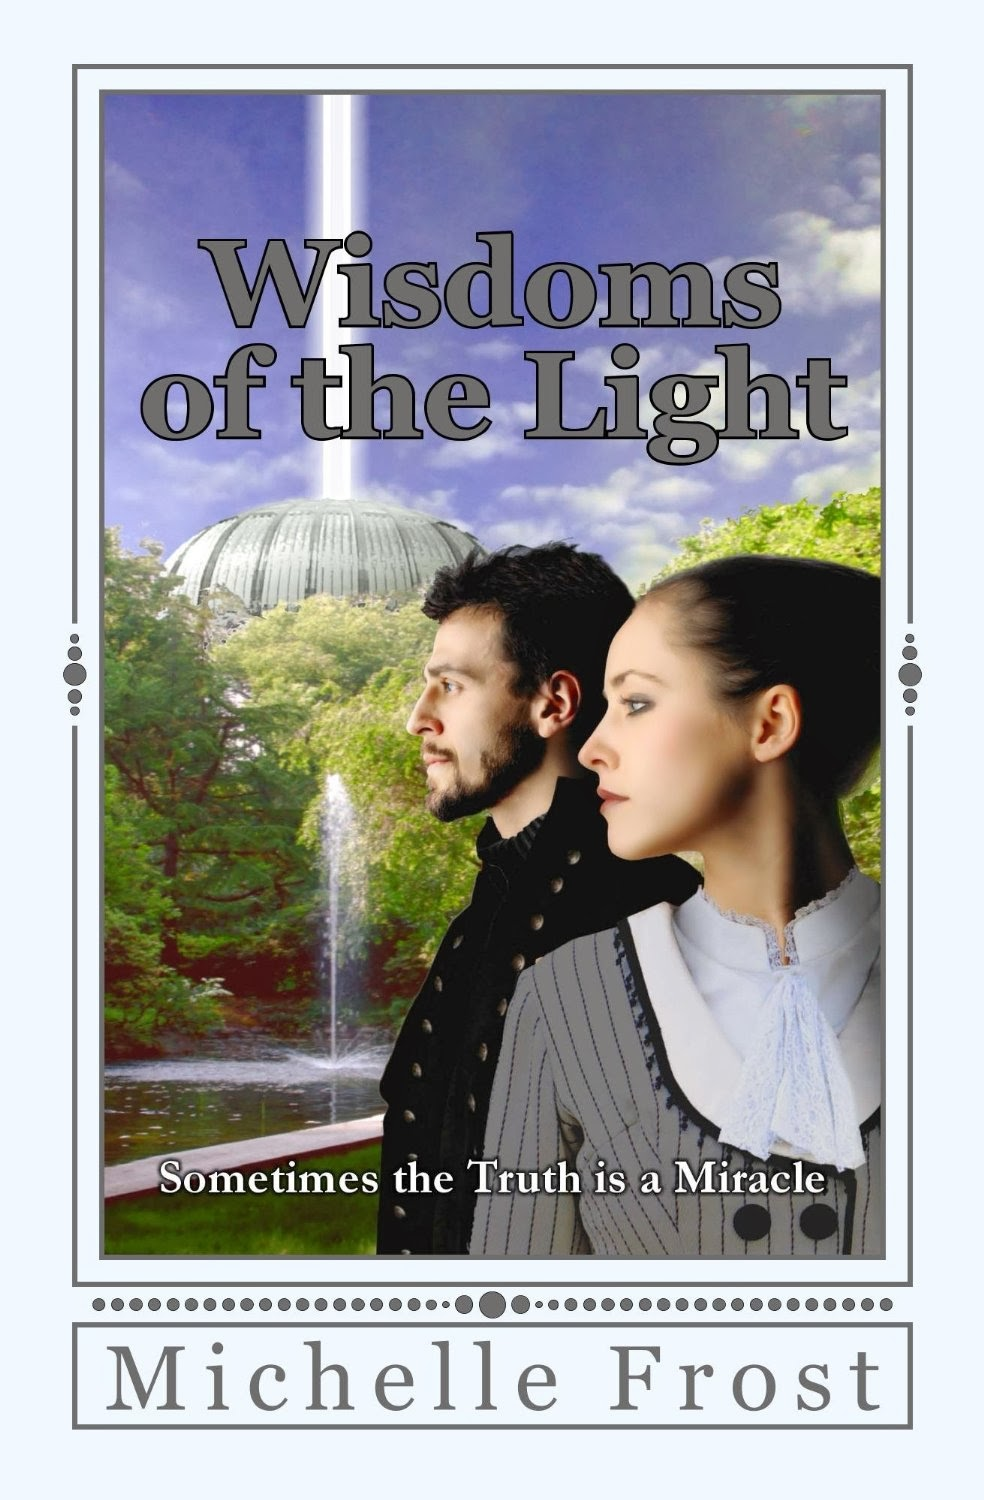 http://www.amazon.com/Wisdoms-Light-First-Volume/dp/1494786435/ref=tmm_pap_title_0?ie=UTF8&qid=1388341035&sr=8-1